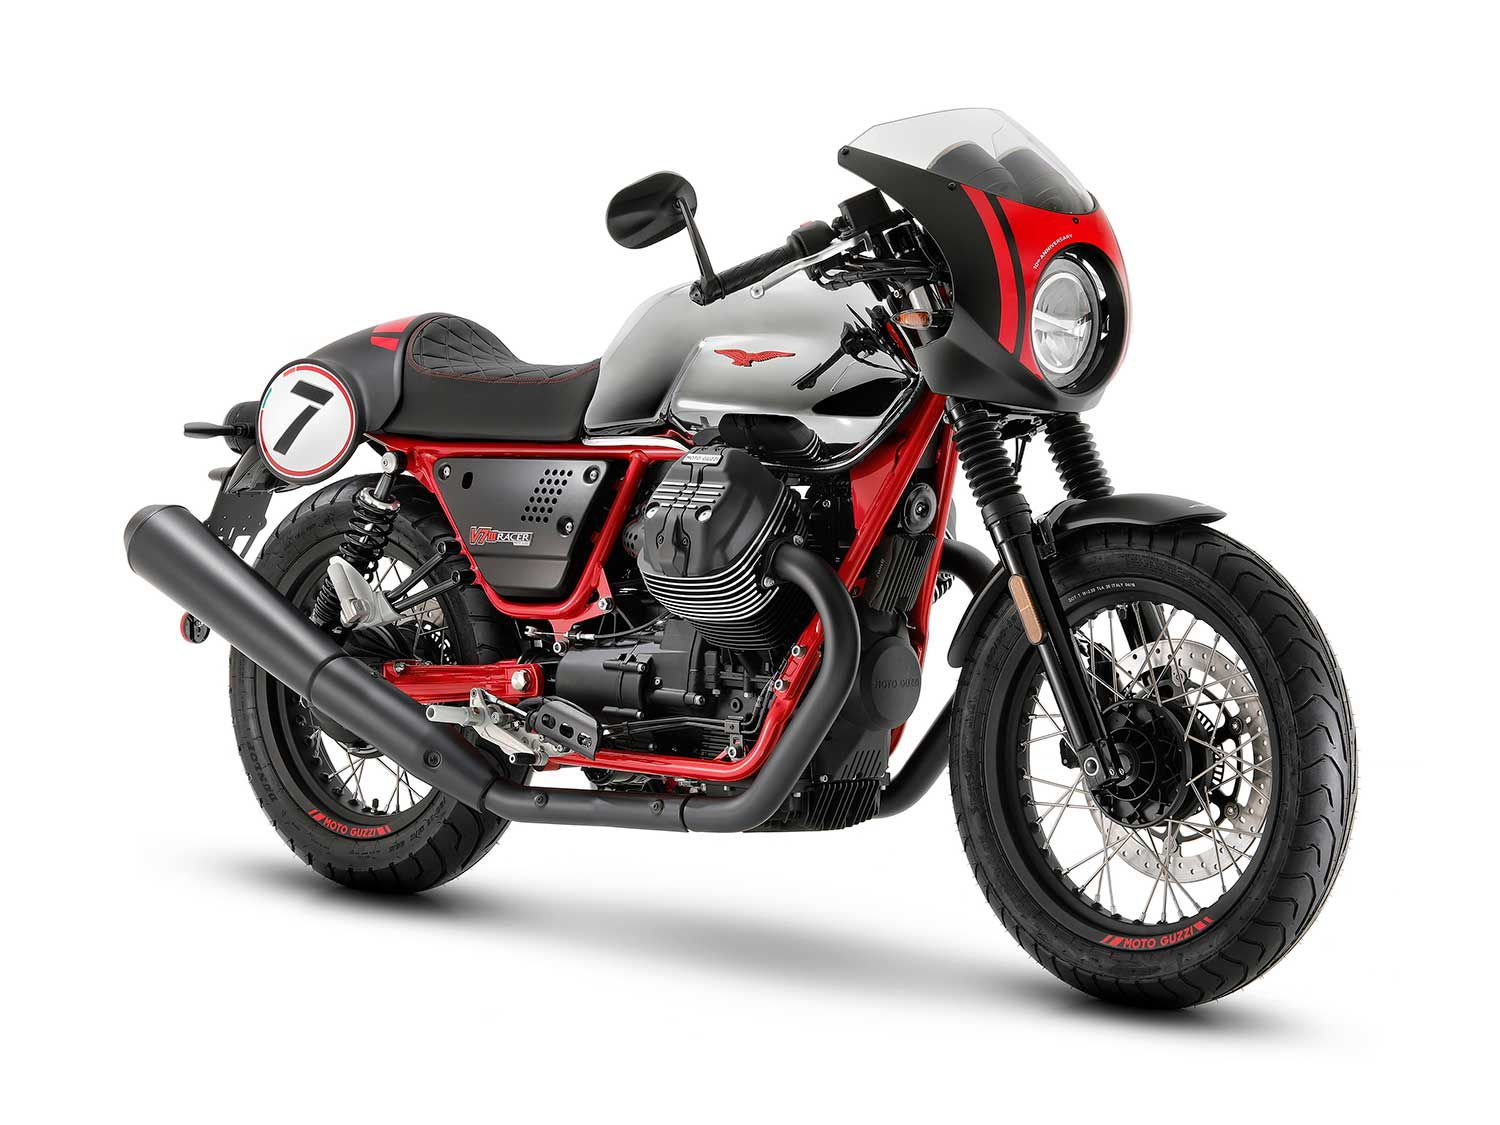 <h2>2020 Moto Guzzi V7 III Racer 10th Anniversary</h2> </br> The sporty member of the V7 family celebrates its decade of life with the 2020 Moto Guzzi V7 III Racer 10th Anniversary.